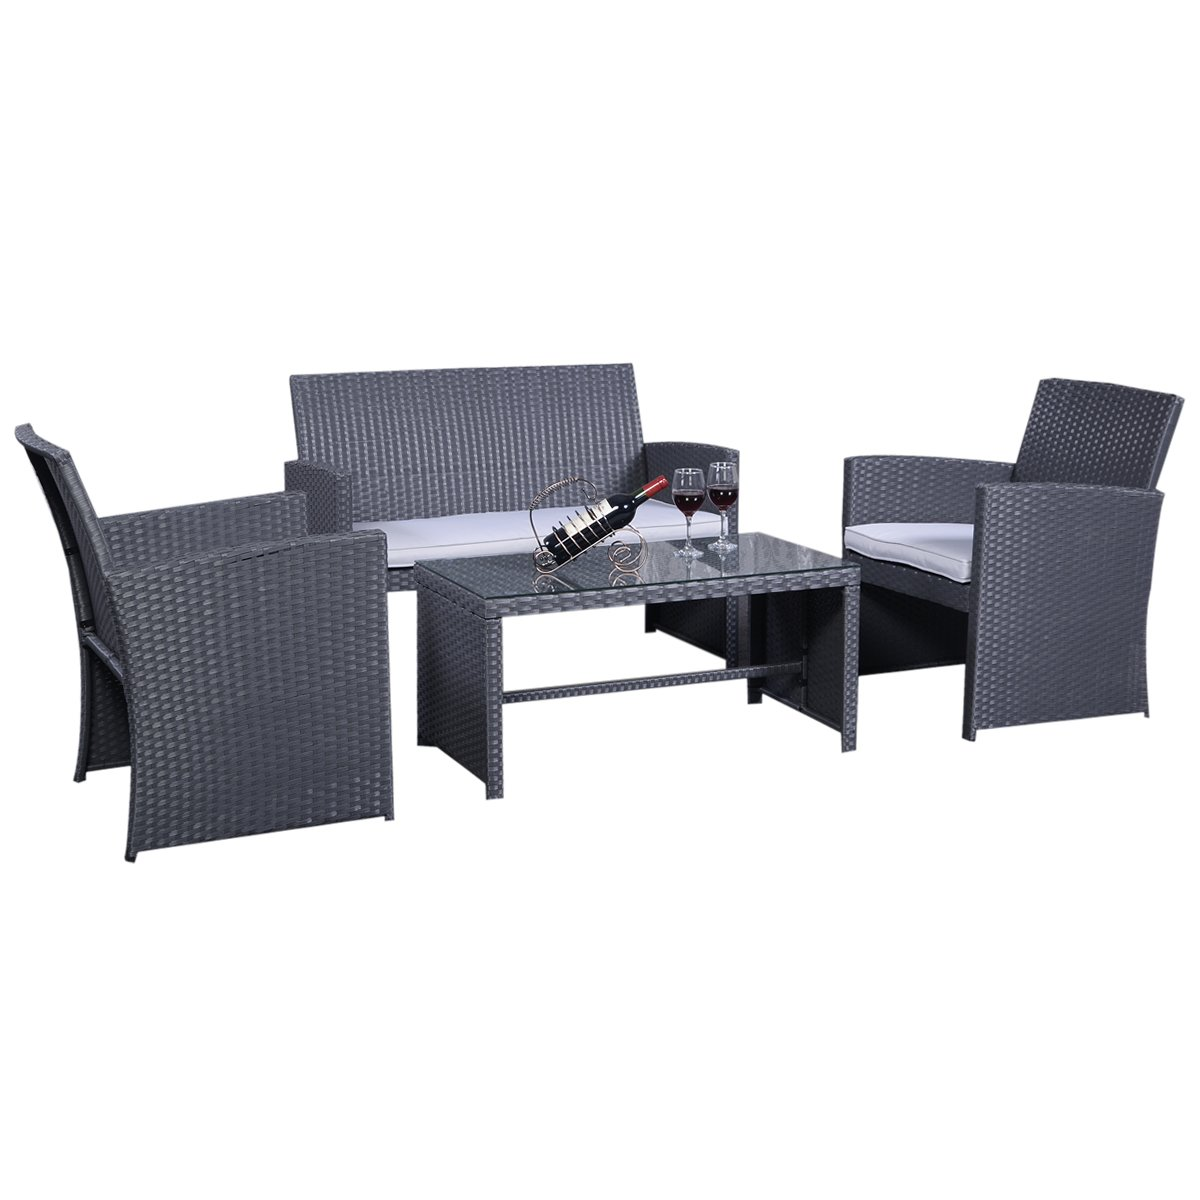 rattanm bel set gartenm bel rattan lounge polyrattan sitzgruppe garnitur garten grau g nstig. Black Bedroom Furniture Sets. Home Design Ideas